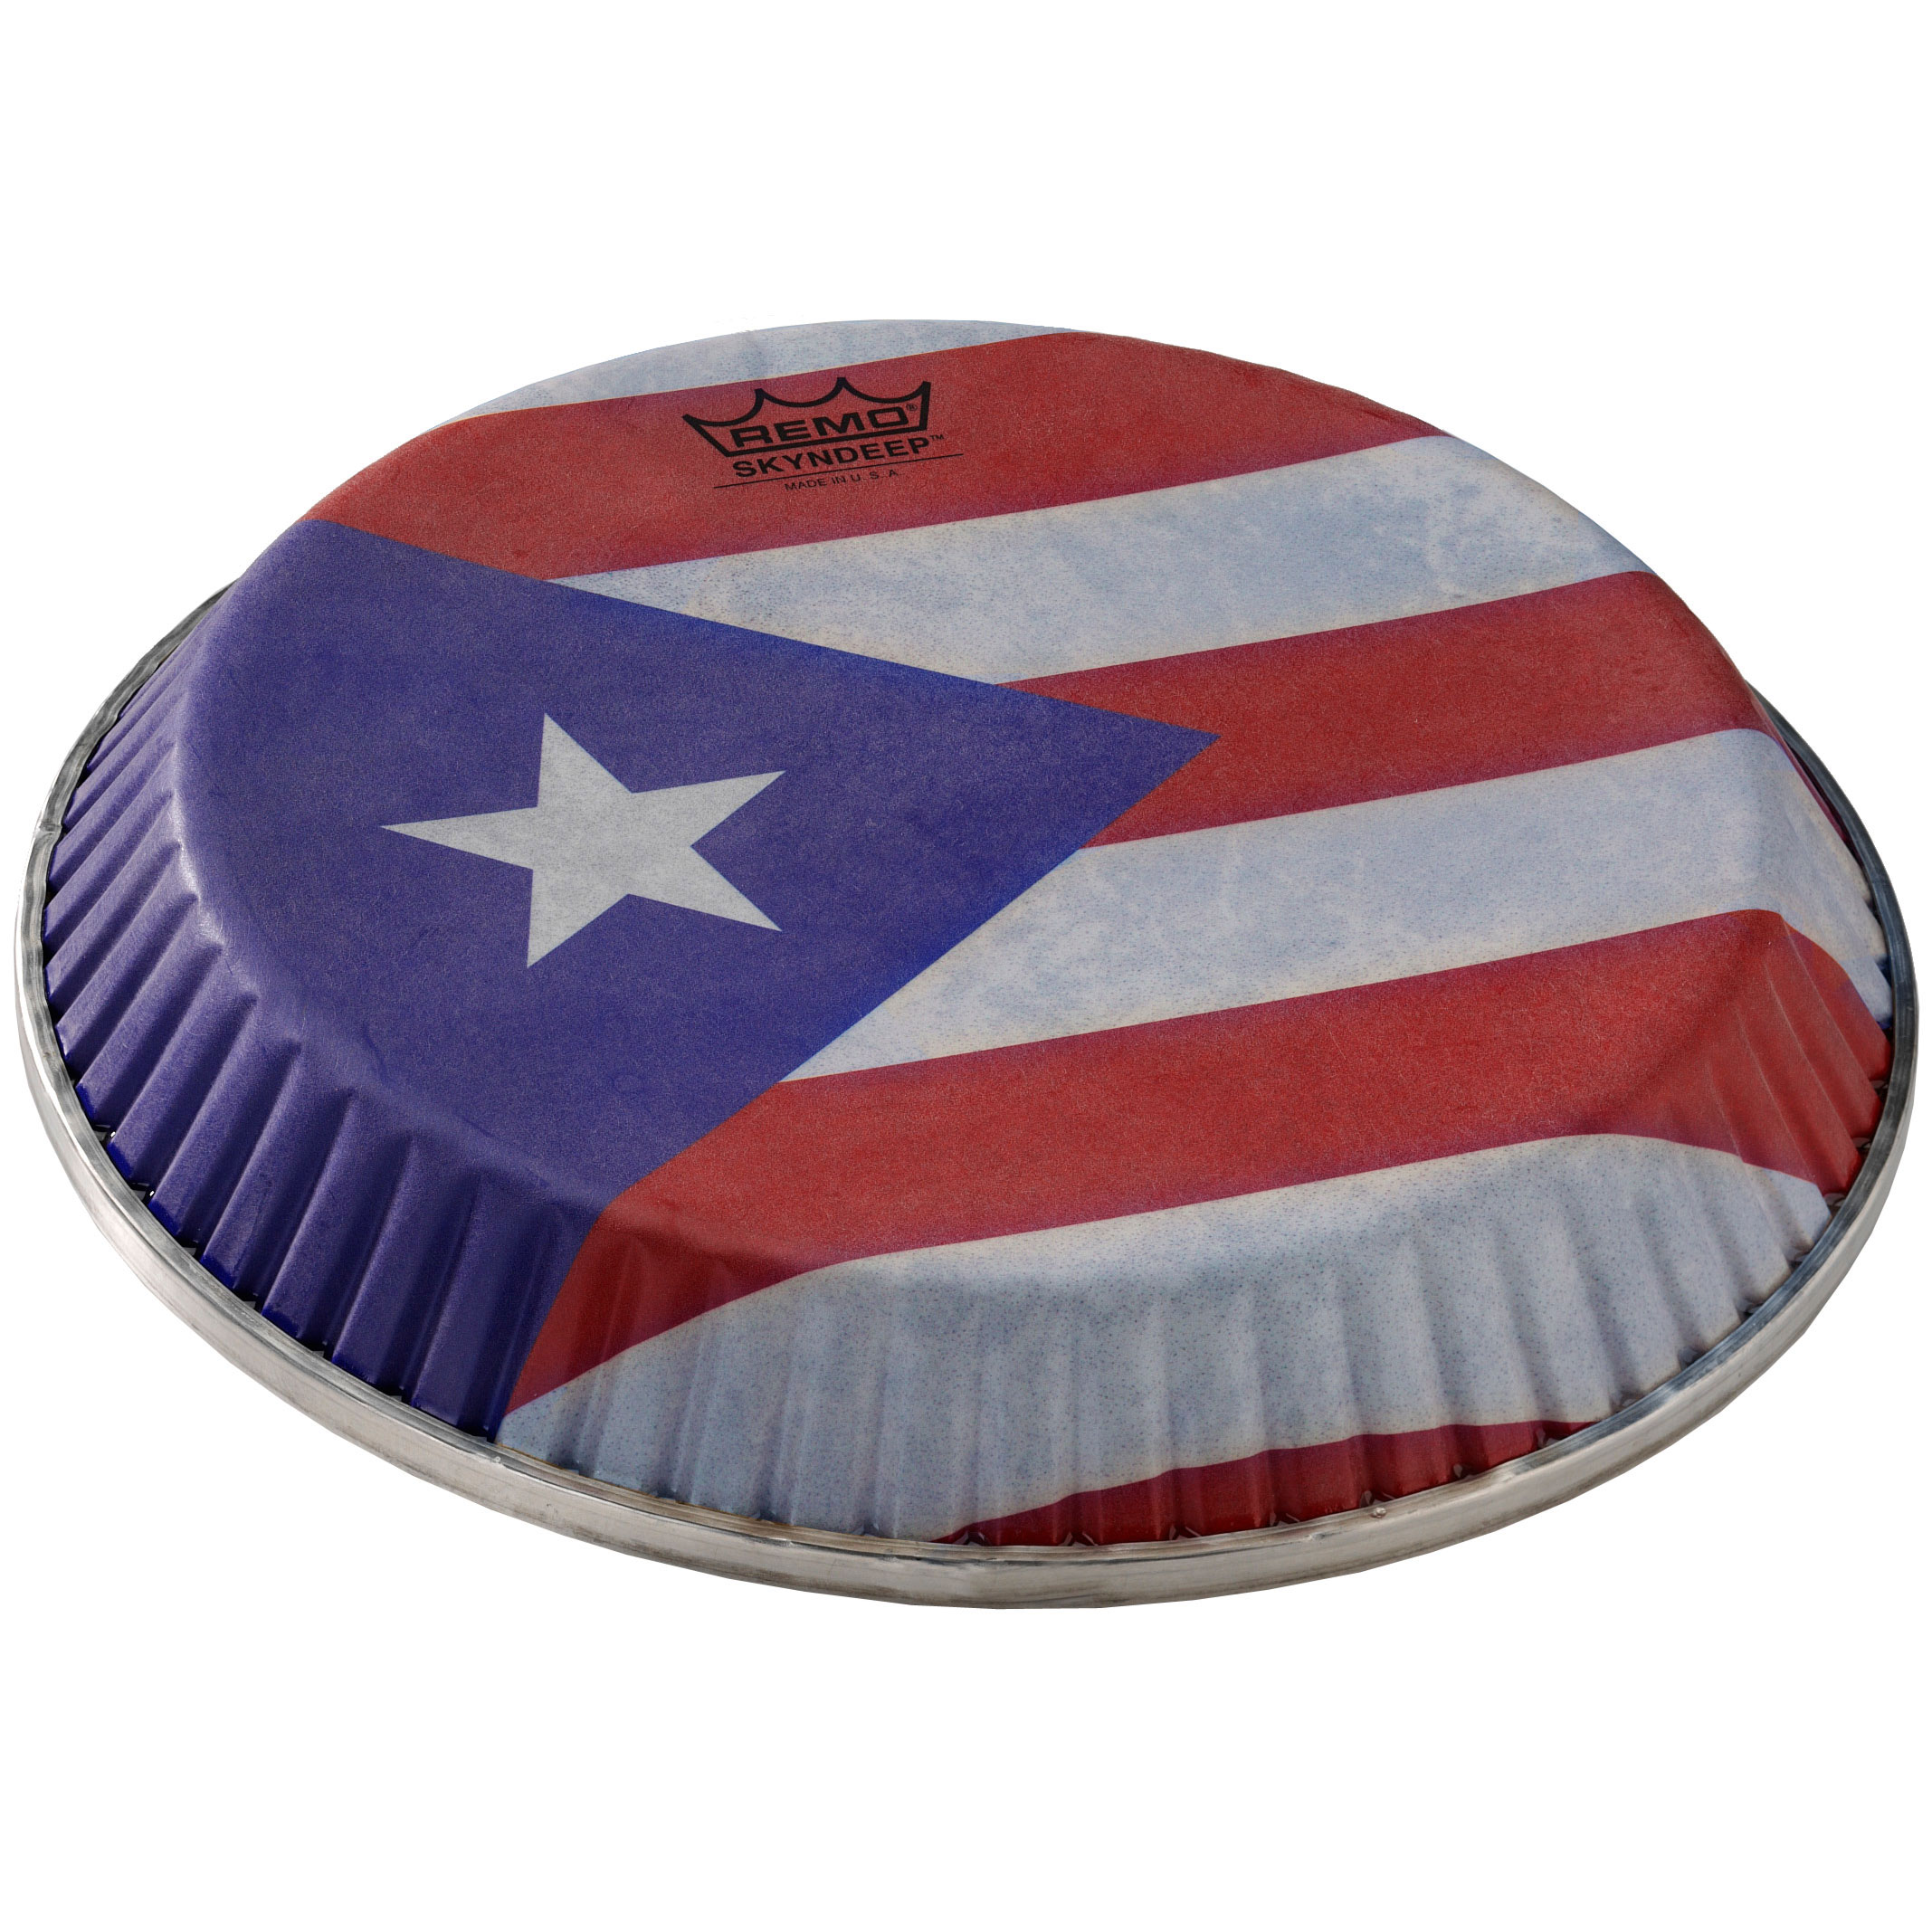 "Remo 11.75"" Symmetry Skyndeep Conga Drum Head (D1 Collar) with Puerto Rican Flag Graphic"